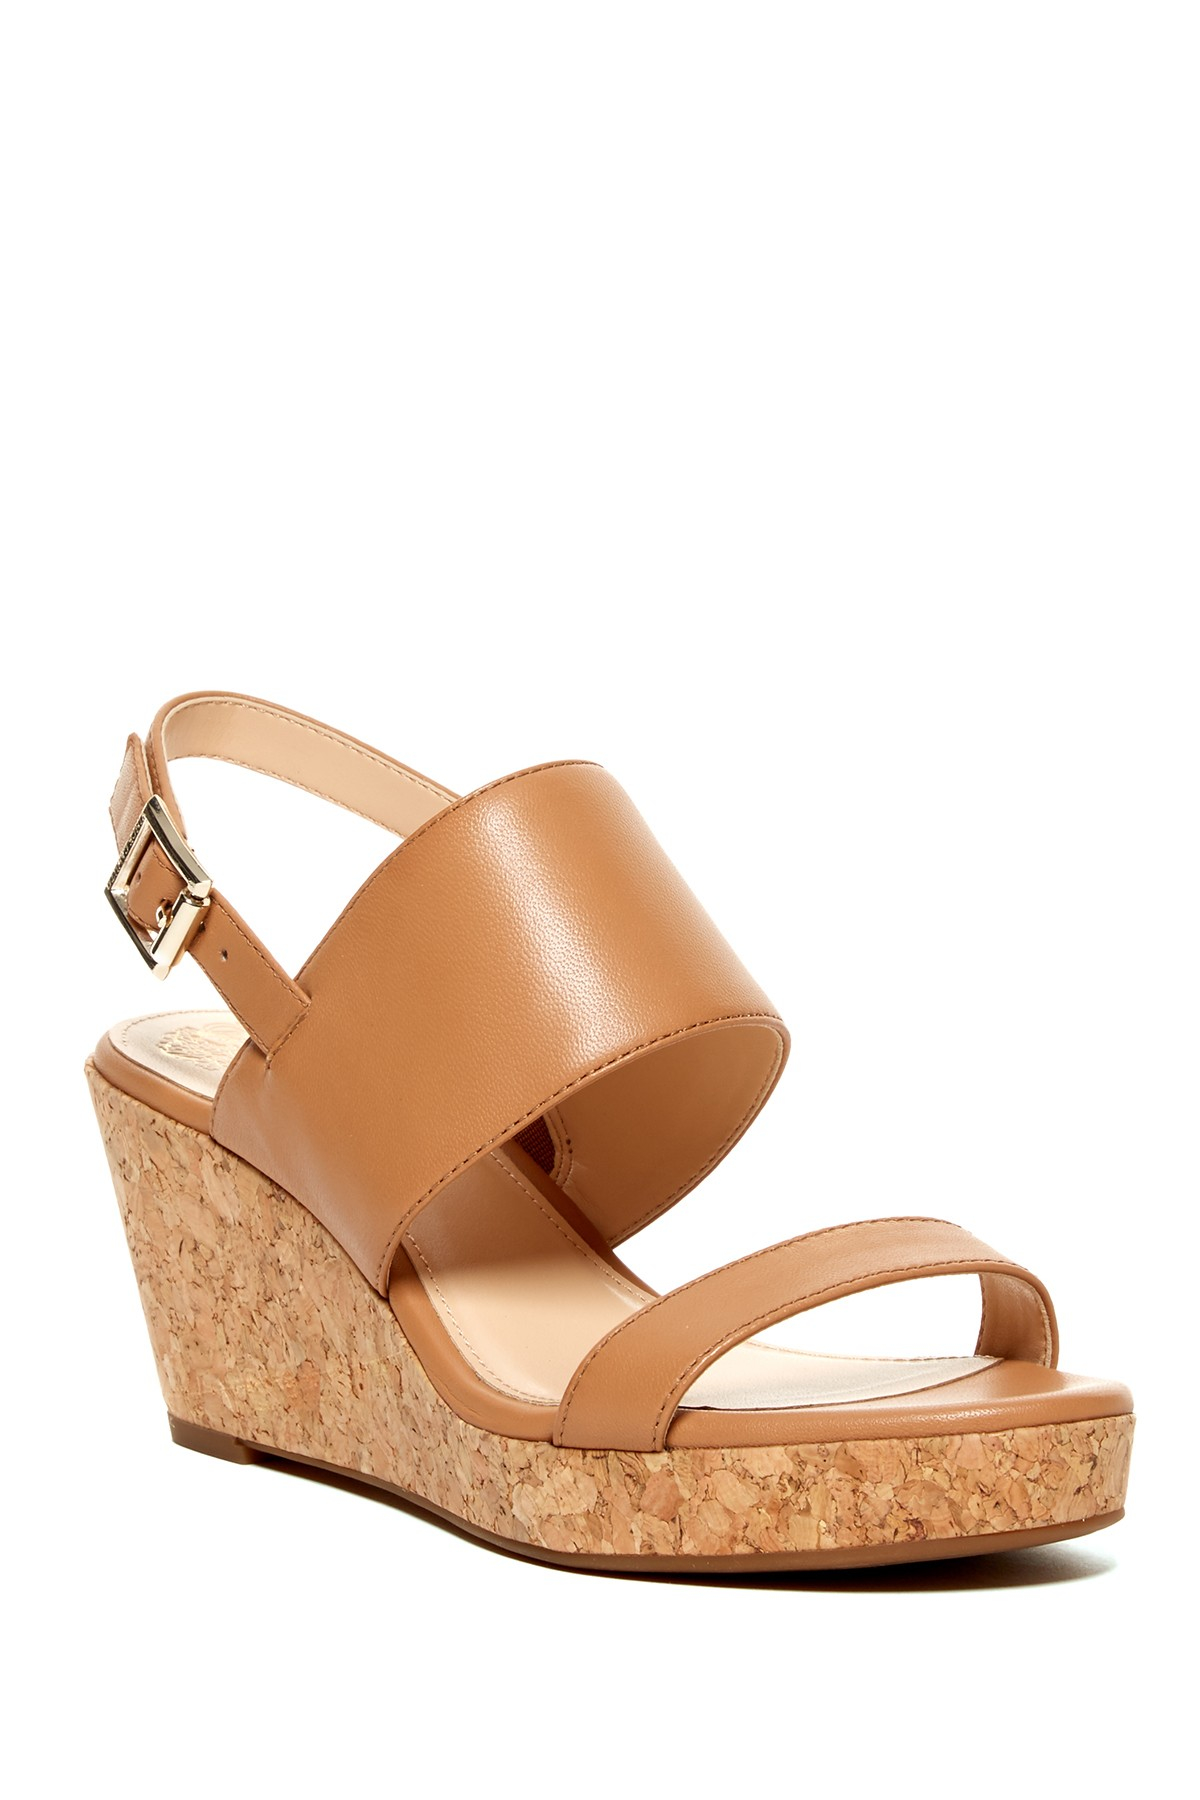 Vince Camuto Ansel Wedge Sandal In Brown Lyst